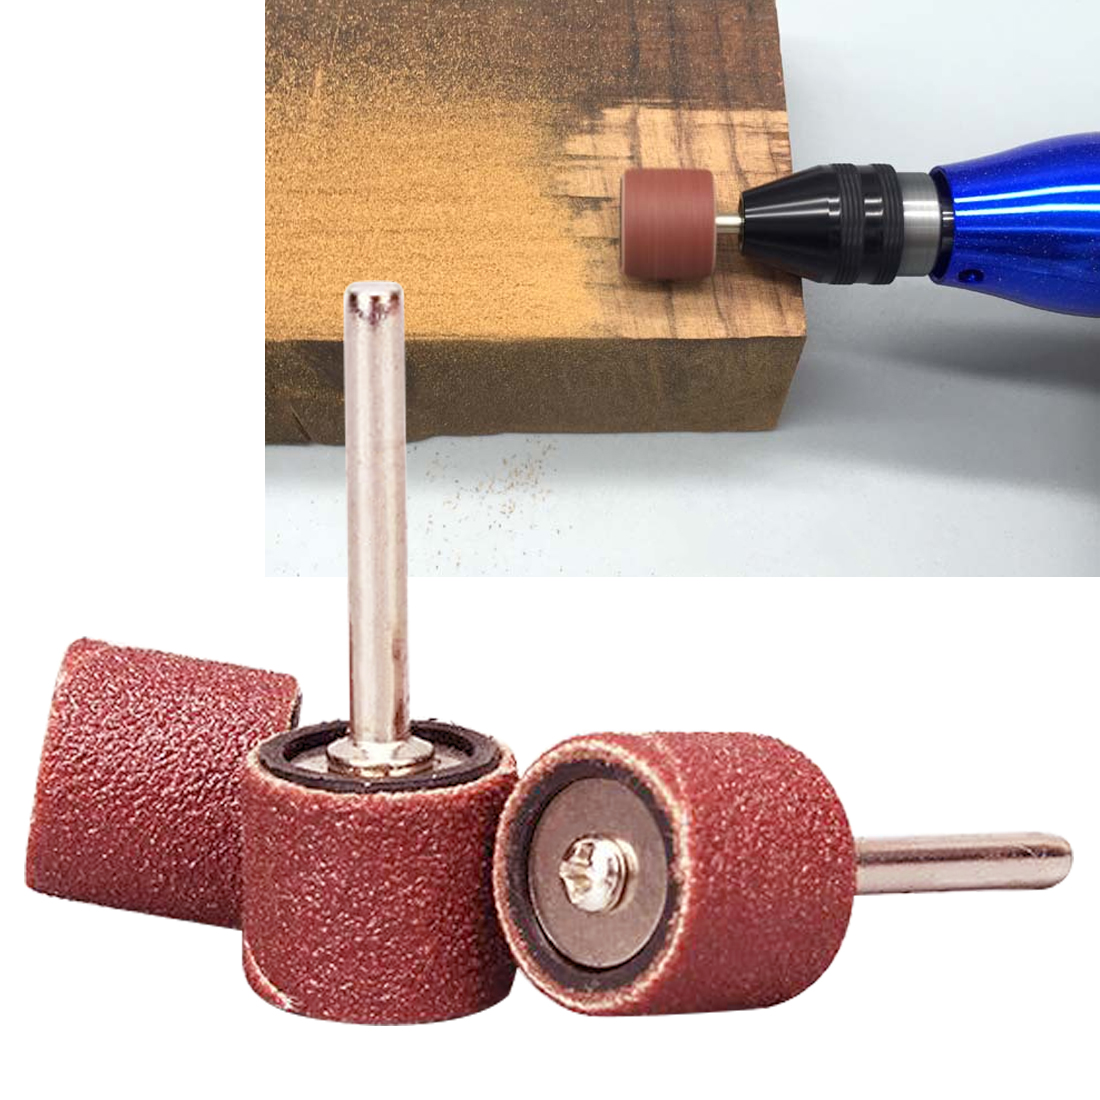 100pc Grinding Tool Sanding Band Drum Sandpaper +2 Mandrel For Sand Shape Groove Wood Fiberglass Dremel Rotary Tool